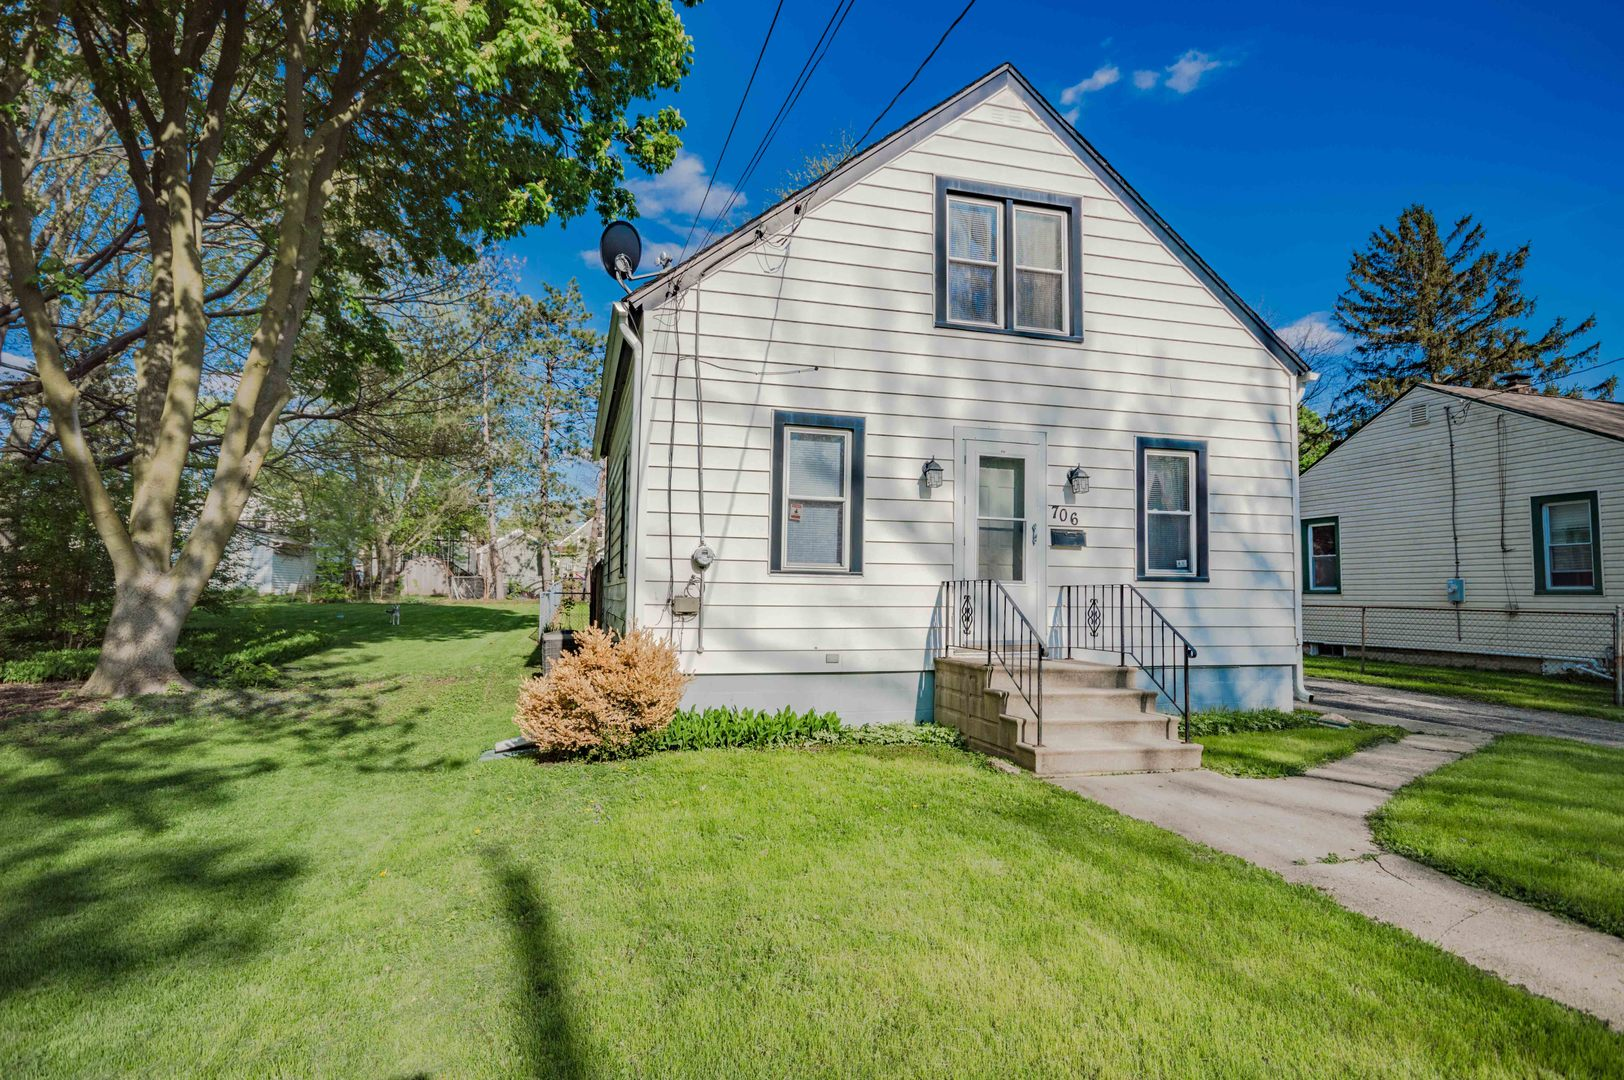 Photo for 706 Carlson Street, SYCAMORE, IL 60178 (MLS # 10381609)